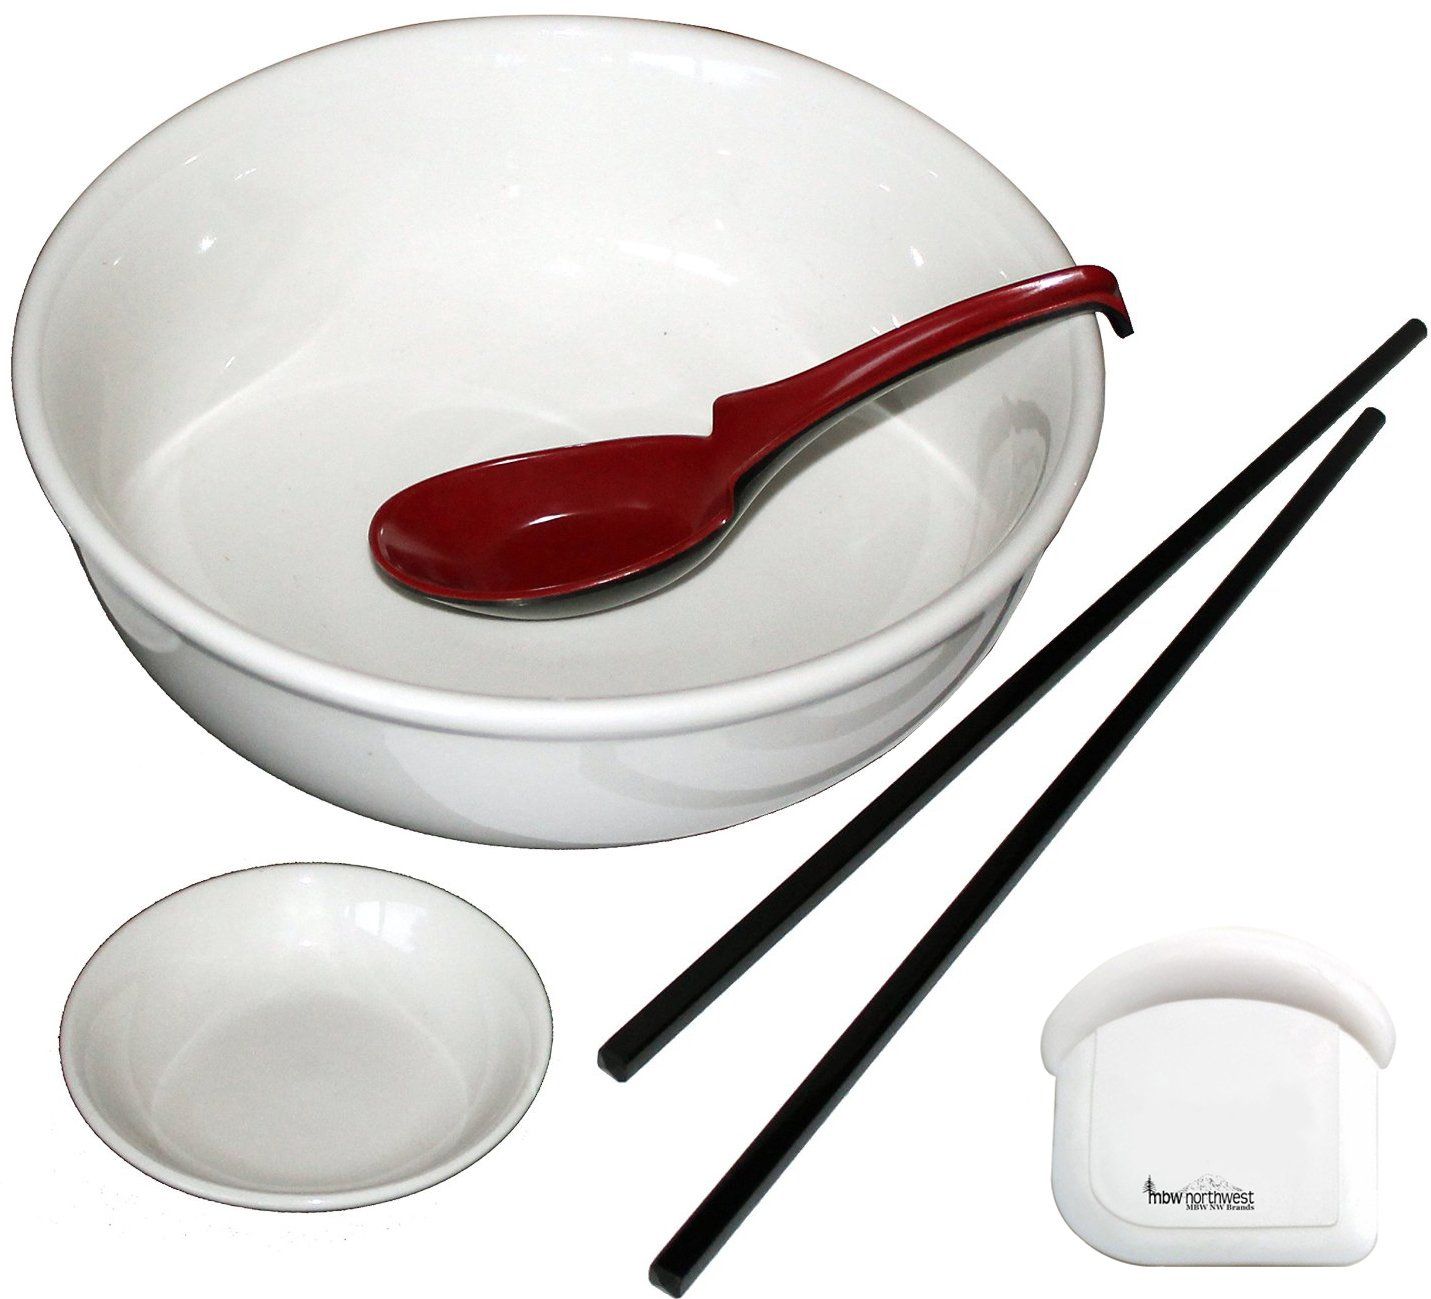 Cameo Ceramic Pho Noodle Soup Bowl Set with Pan Scraper, 9.25 Inch, 72 Ounce, Includes a Hooked Soup Spoon, 3.75'' Sauce Dish and a Pair of Chopsticks